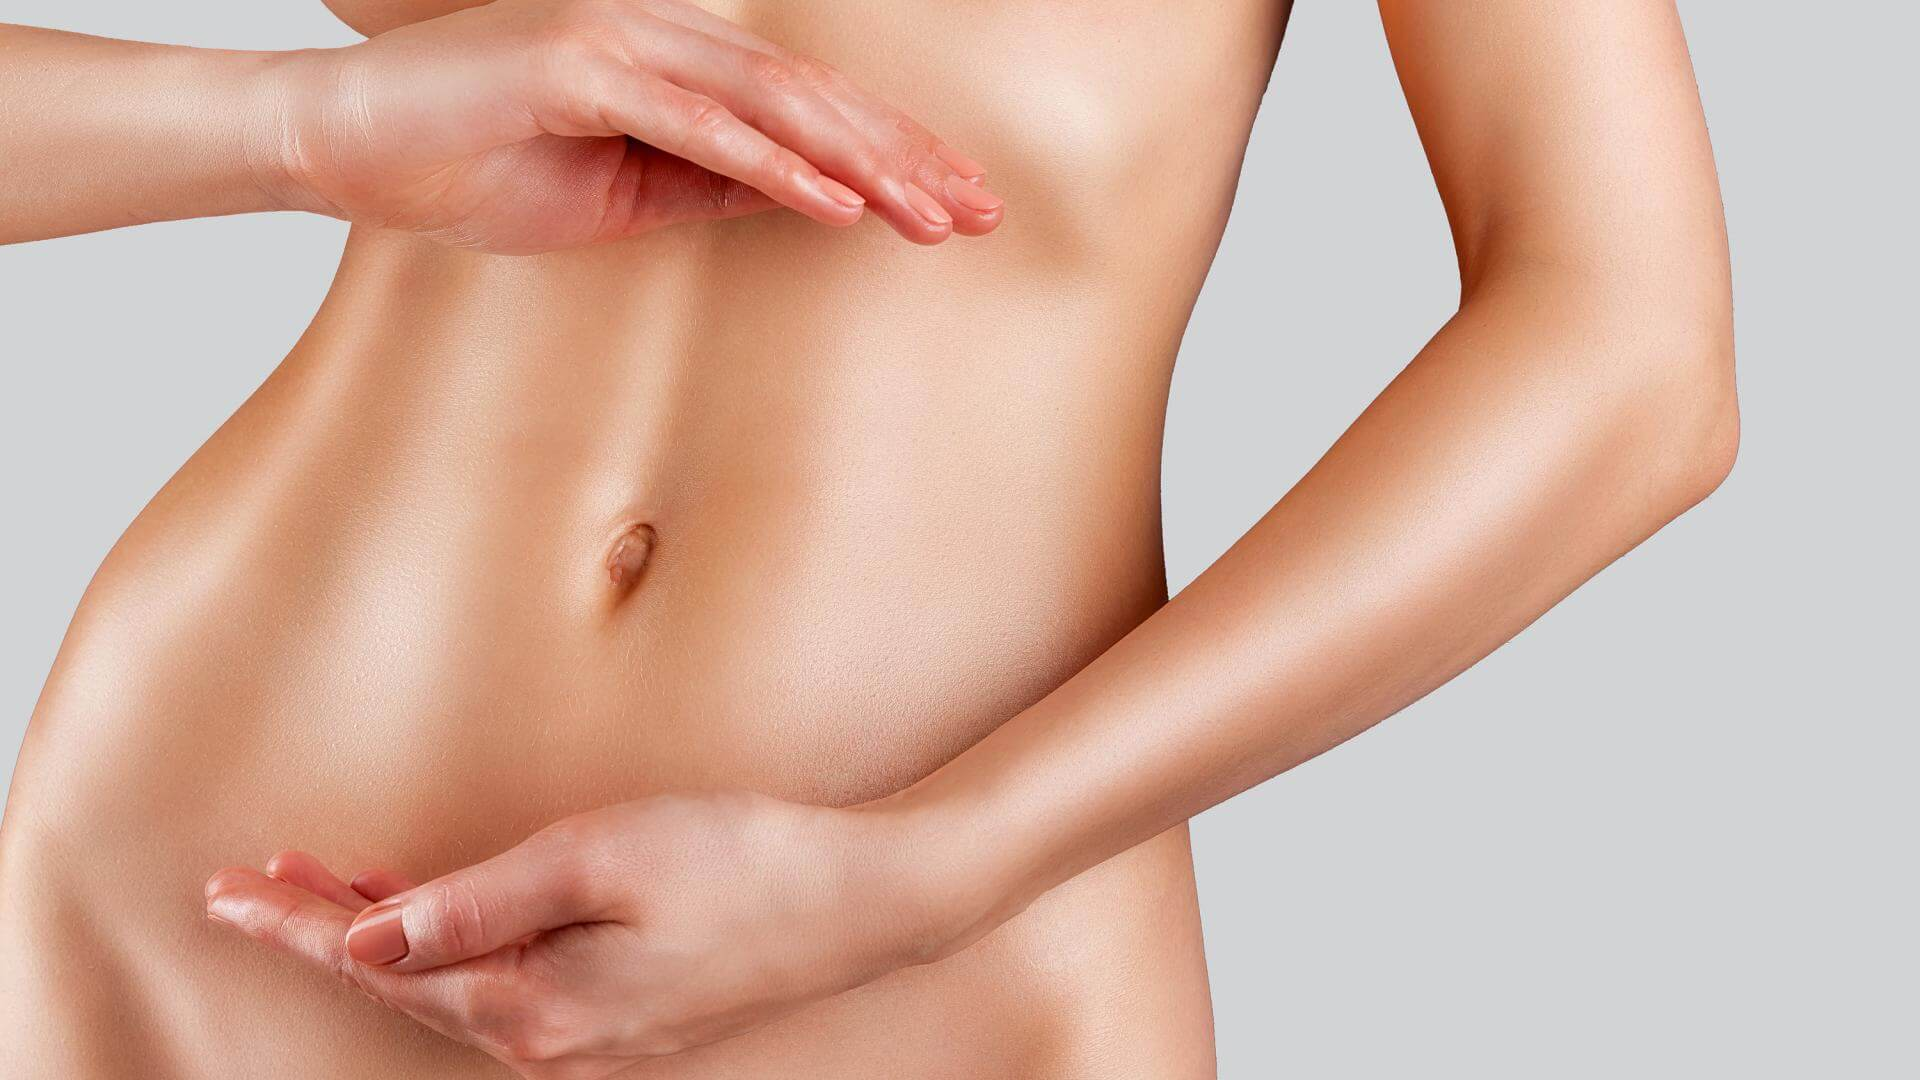 Liposuction Surgery Is It Worth The Cost Skinsational By Dr Luciano